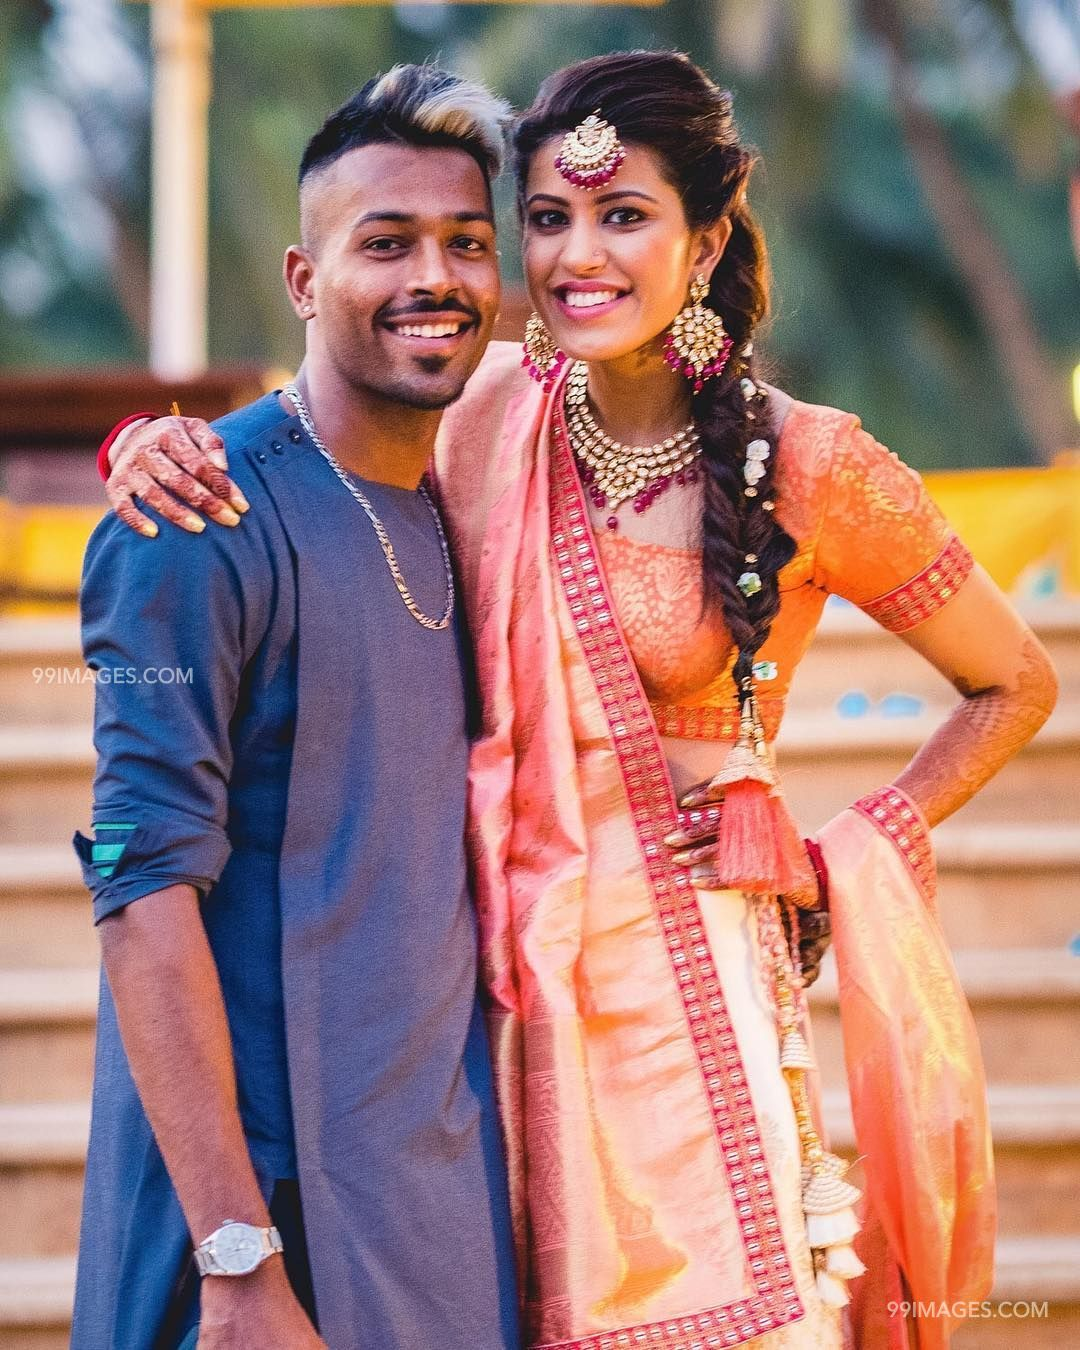 Hardik Pandya Photoshoot Images & HD Wallpapers (1080p) - hardik pandya,cricketer,hd images,hardik pandya tattoo,indian all rounder